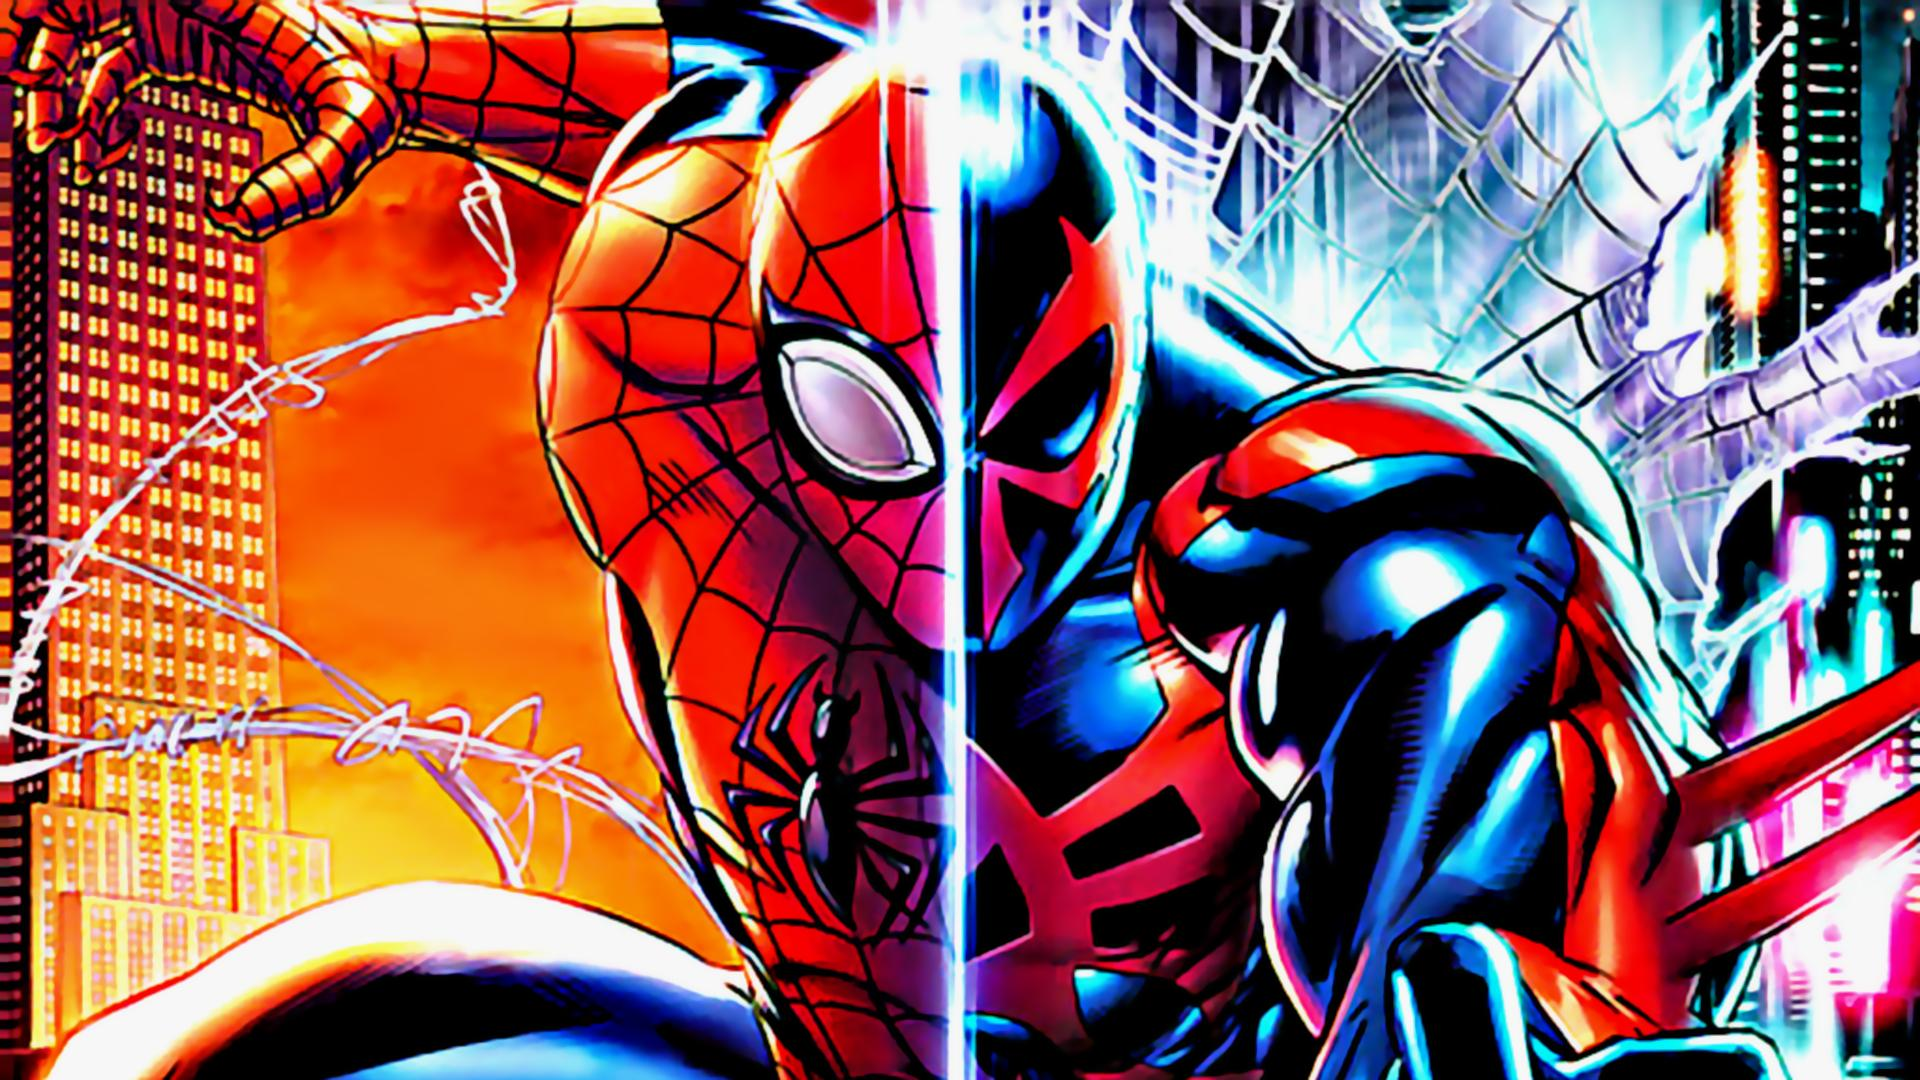 41 Spider Man 2099 Hd Wallpaper On Wallpapersafari